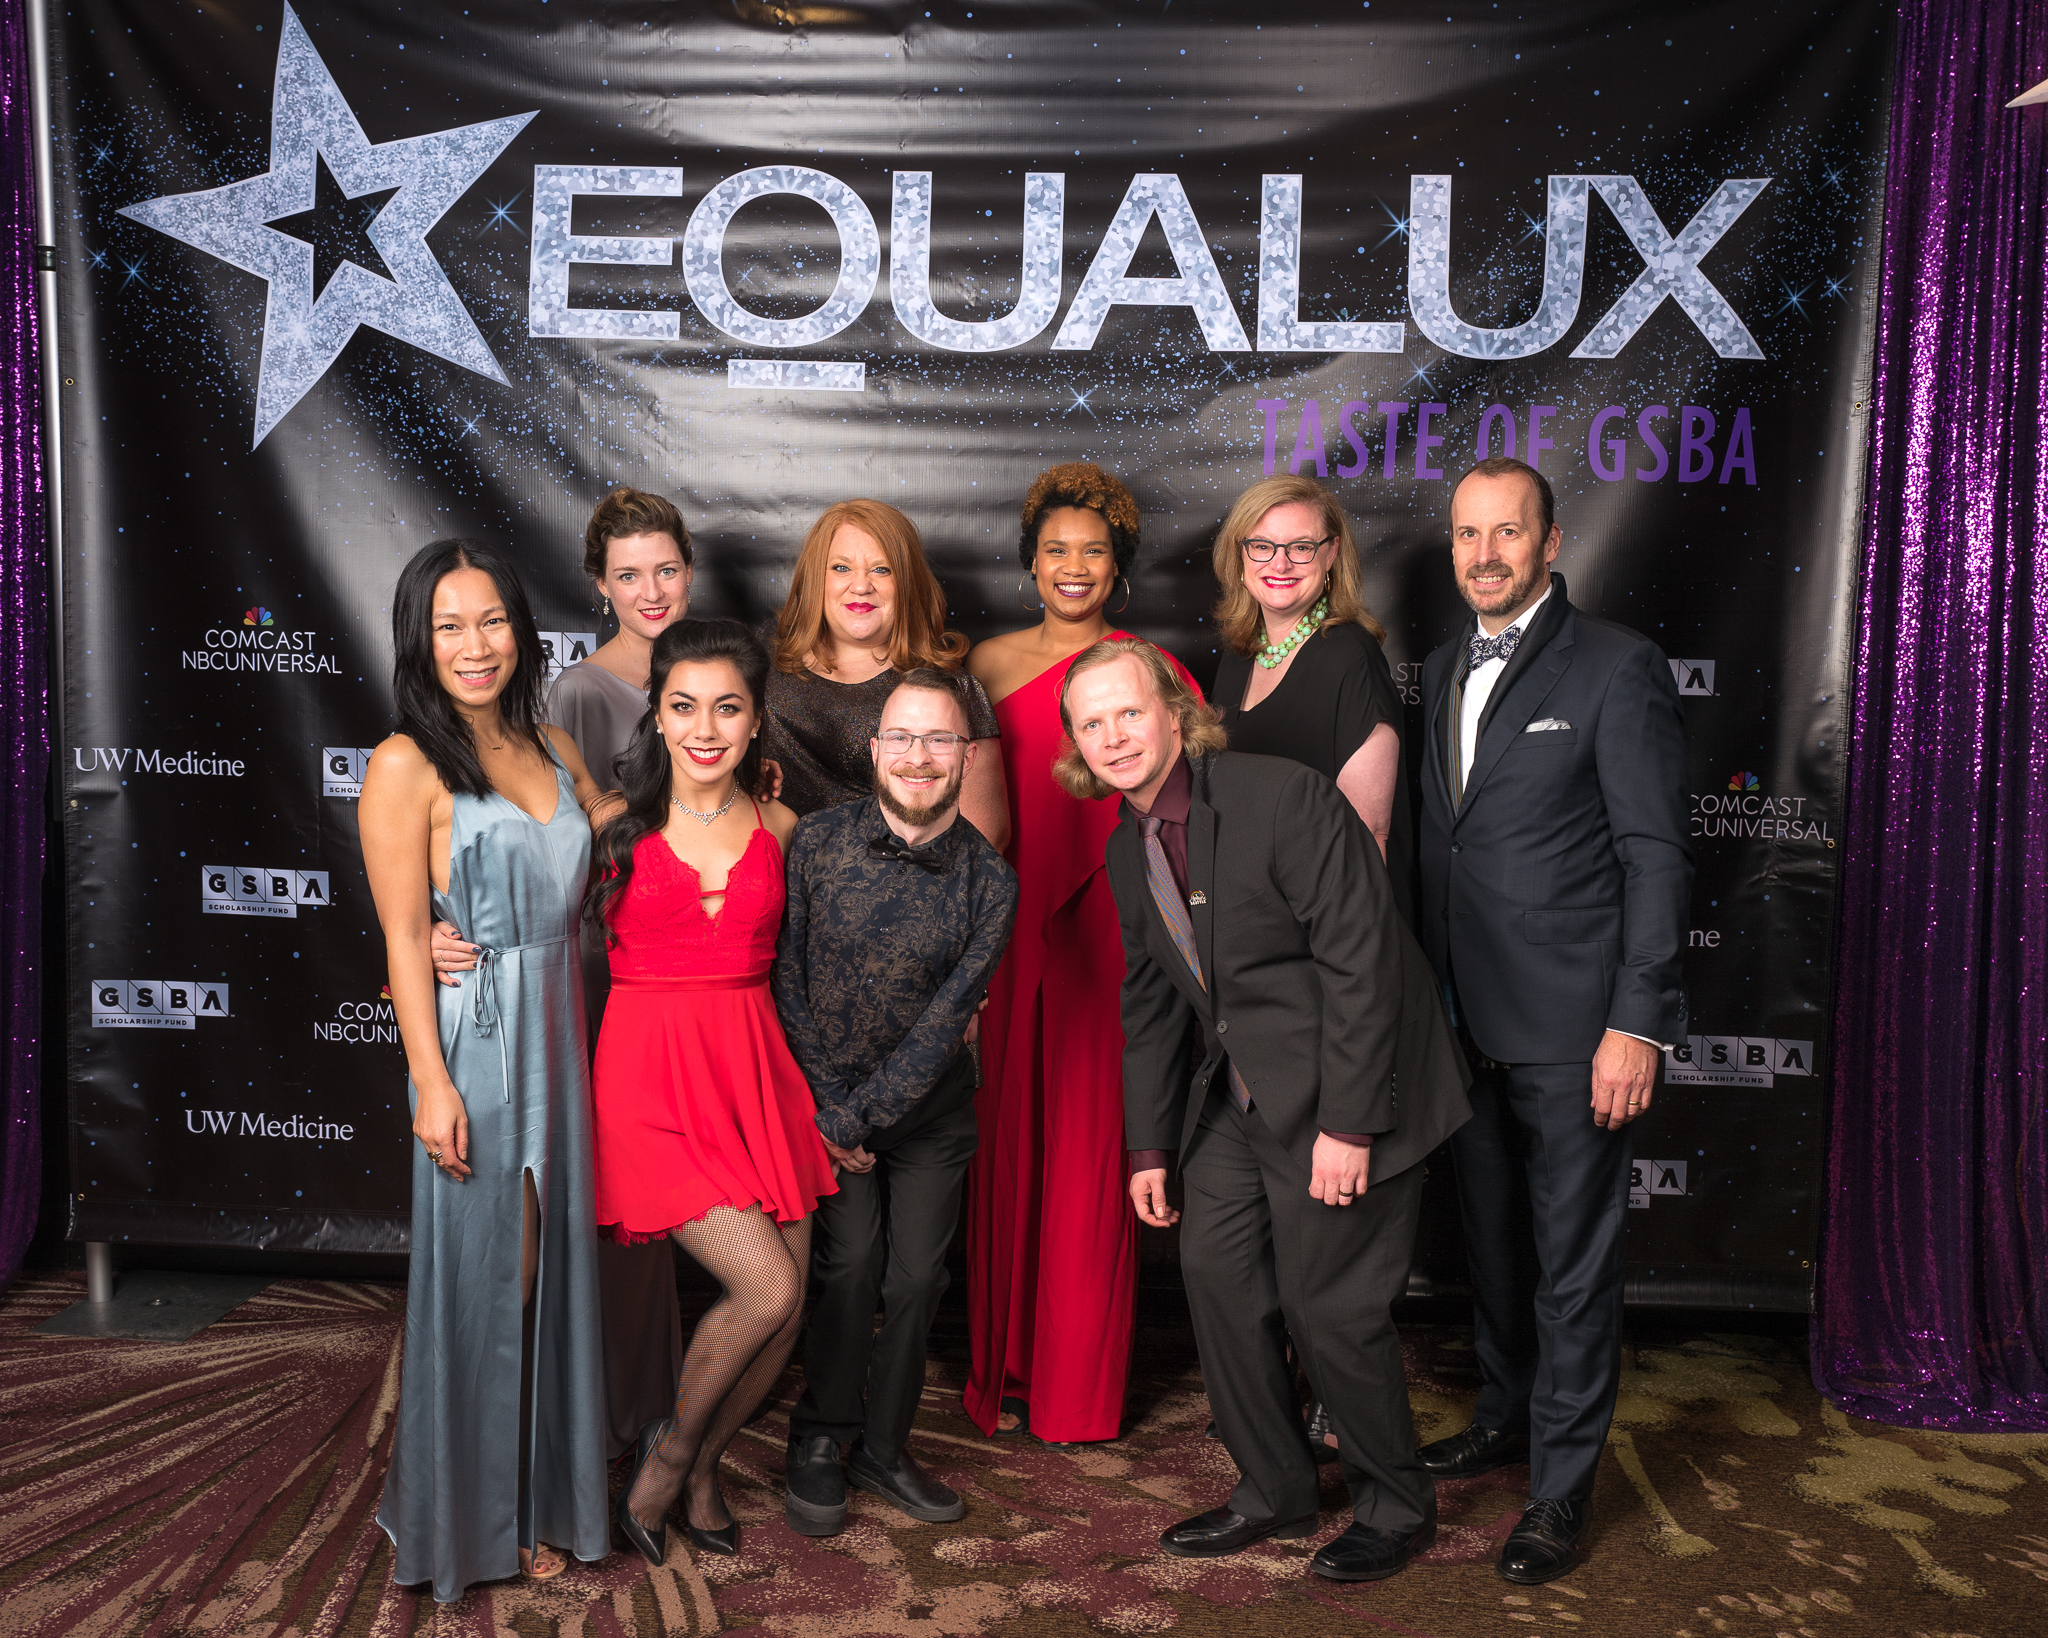 111718_GSBA EQUALUX at The Westin Seattle (Credit- Nate Gowdy)-193.jpg